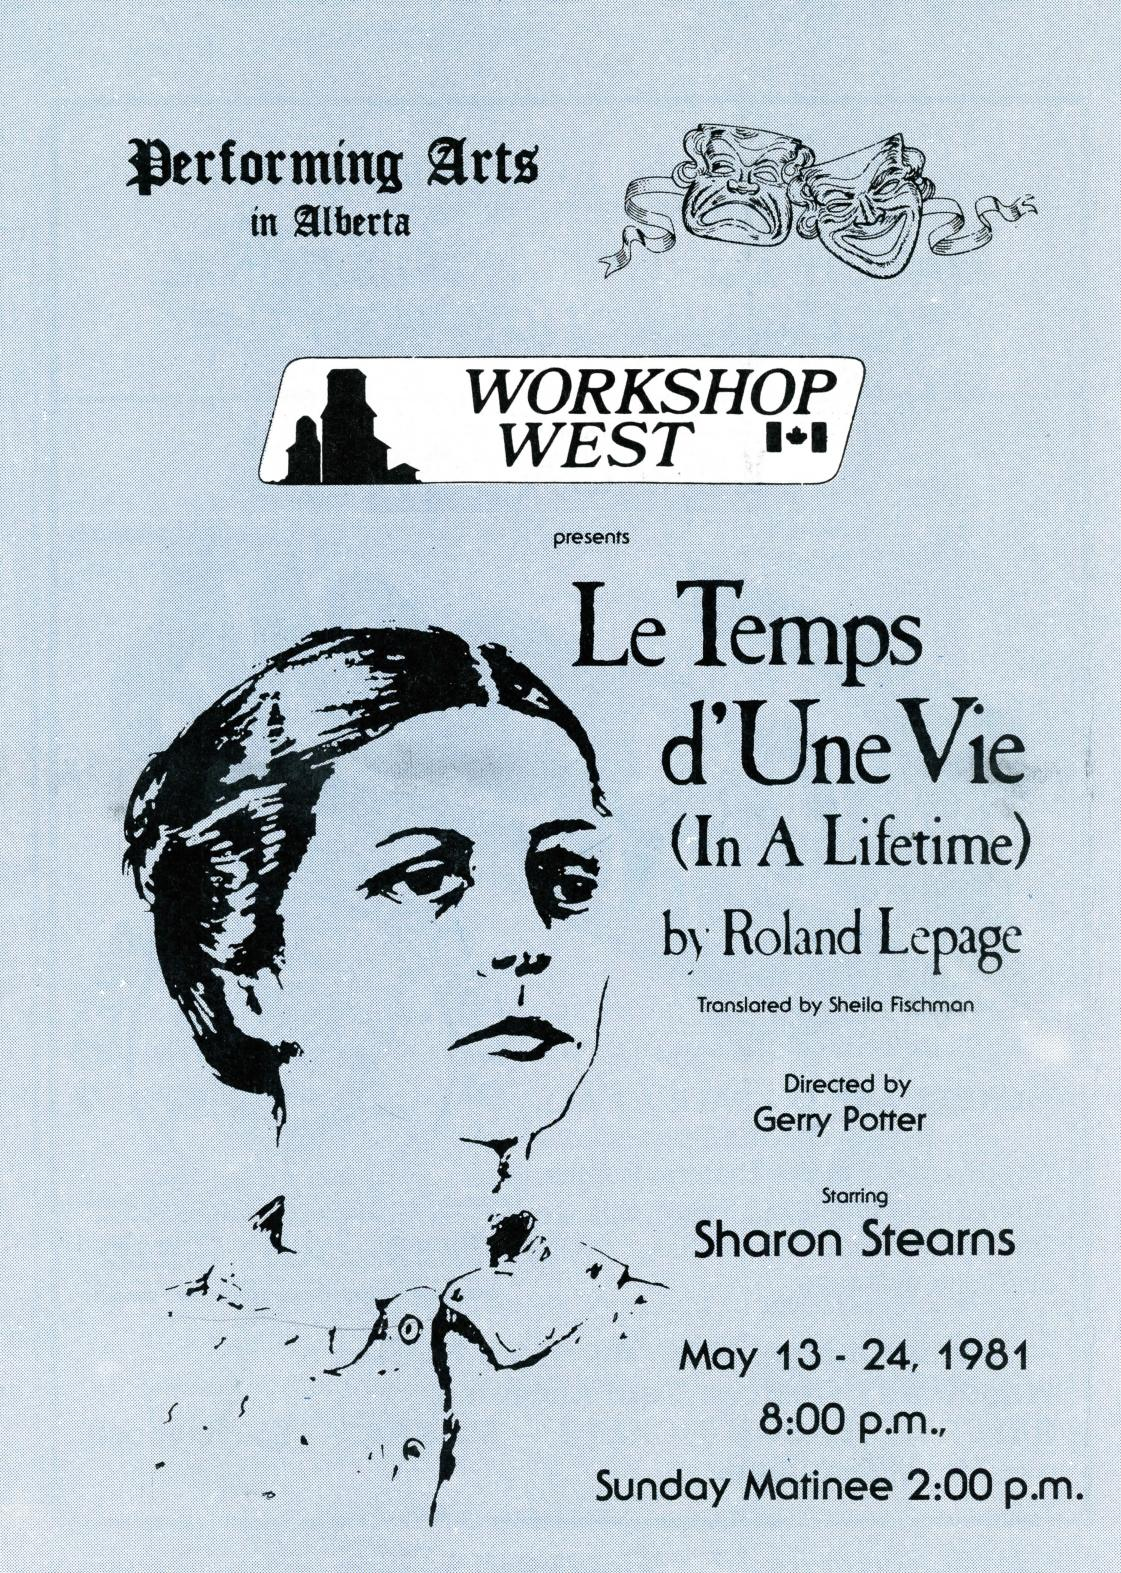 Le Temps D Une Vie [In a Lifetime] (May, 1981) - Program Book-page-001.jpg